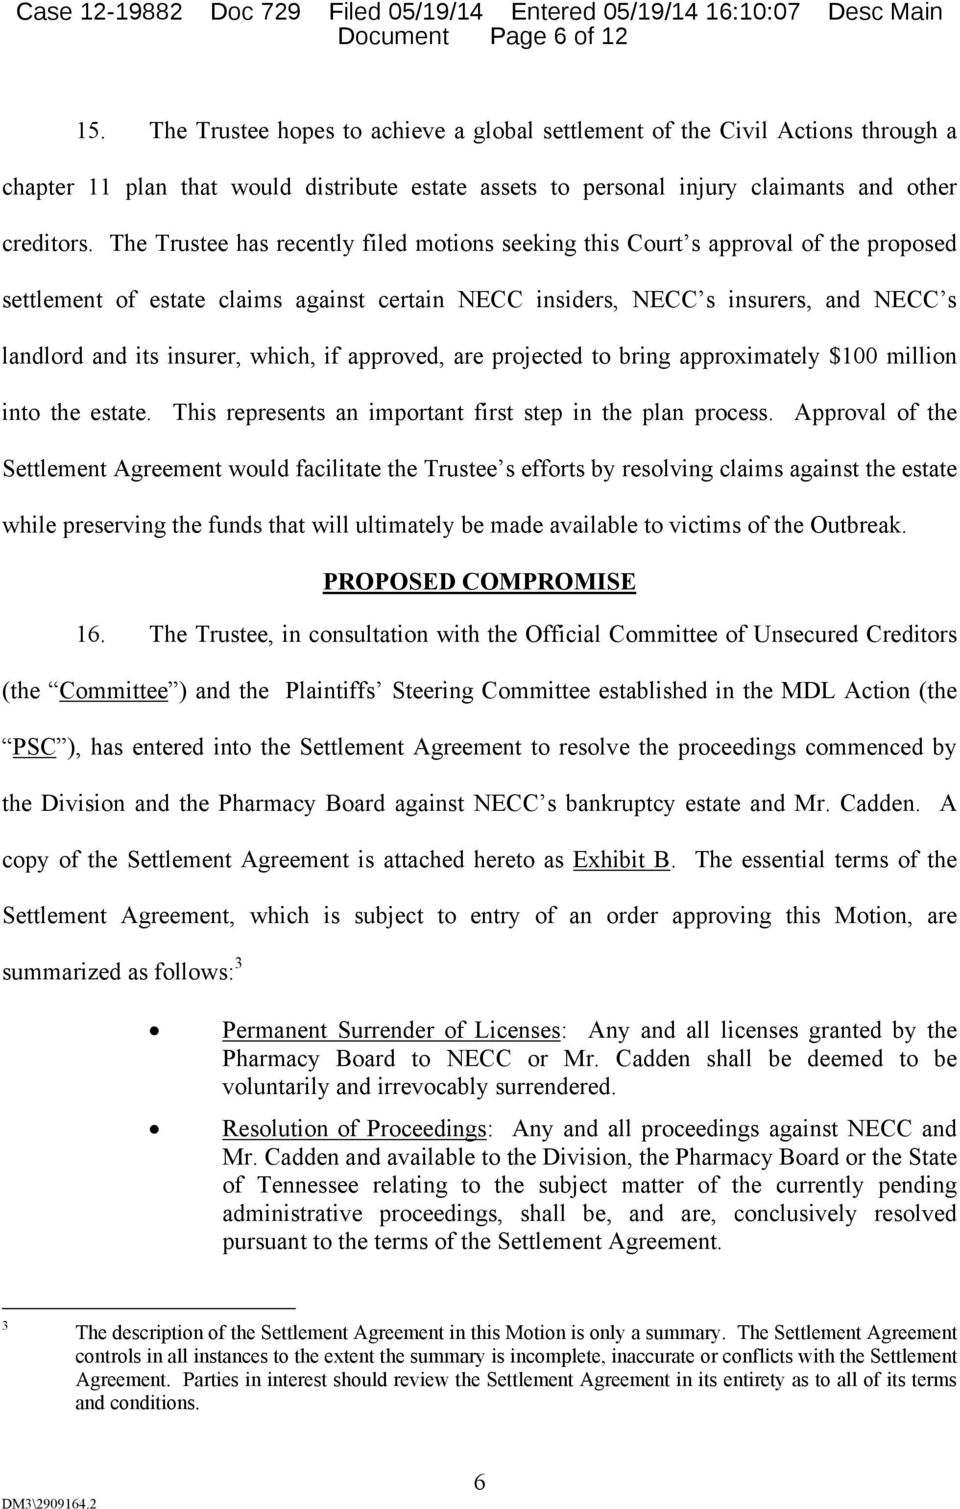 The Trustee has recently filed motions seeking this Court s approval of the proposed settlement of estate claims against certain NECC insiders, NECC s insurers, and NECC s landlord and its insurer,